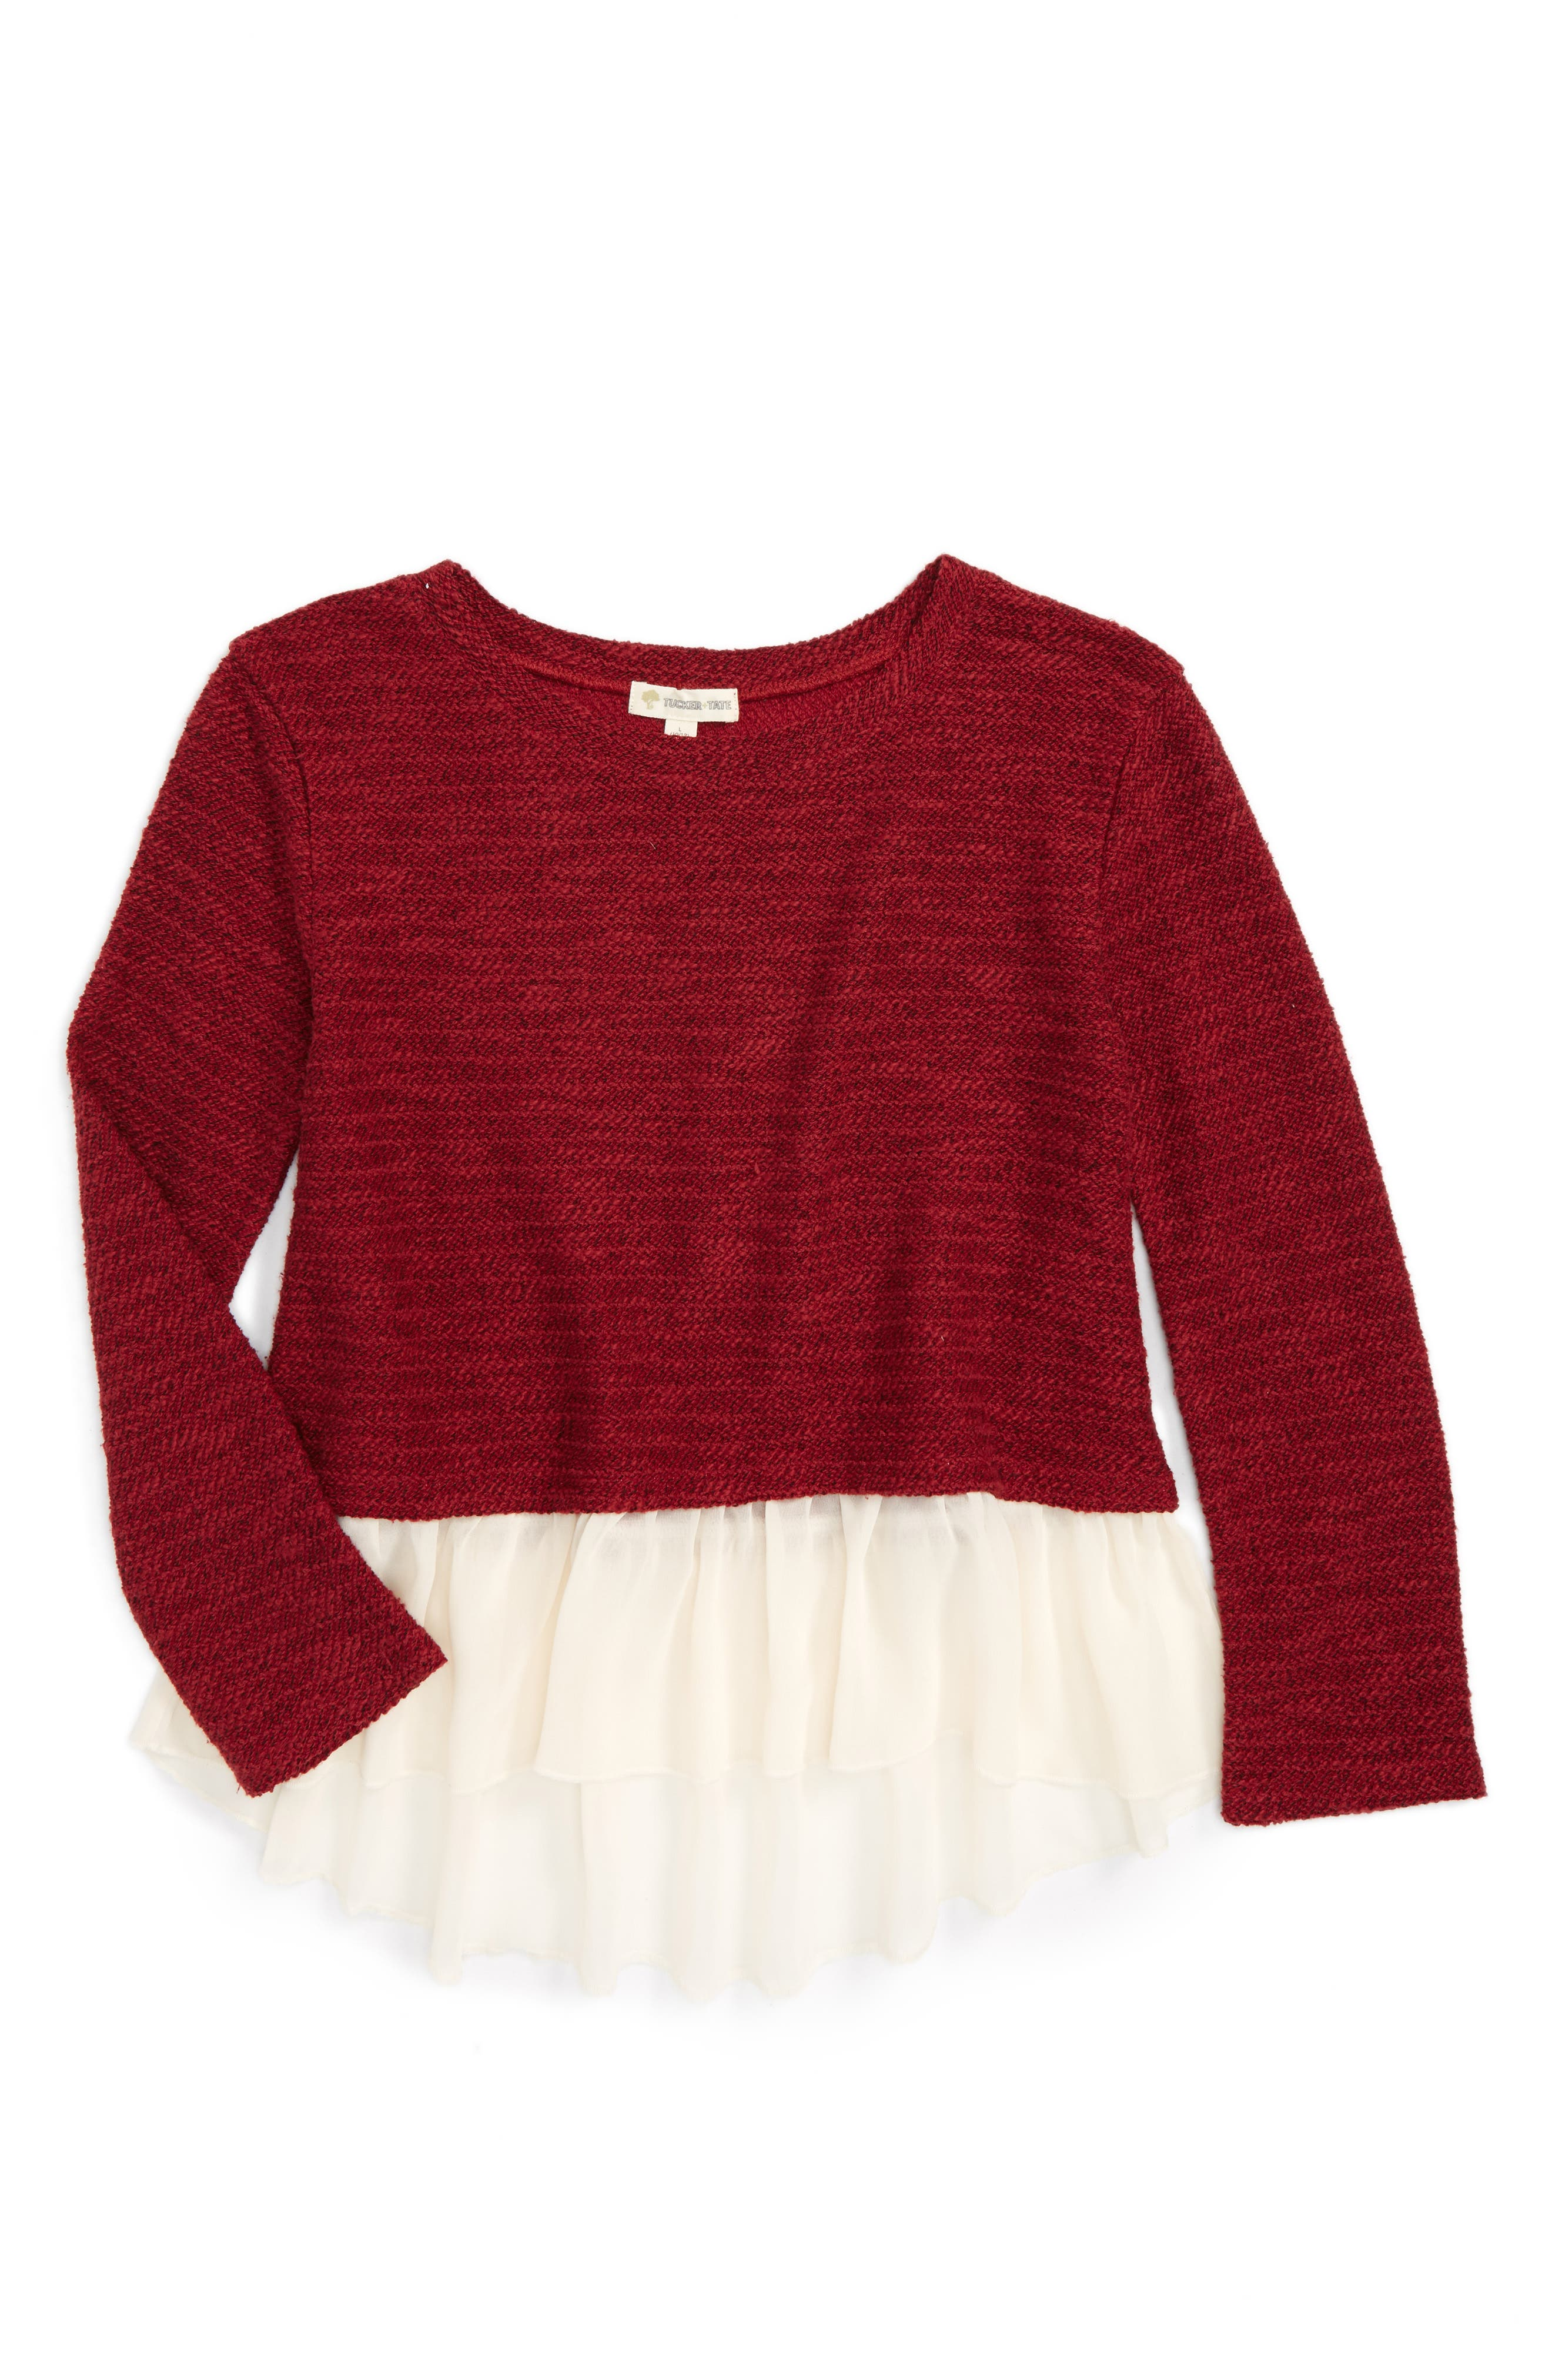 Tucker + Tate Knit Top (Big Girls)